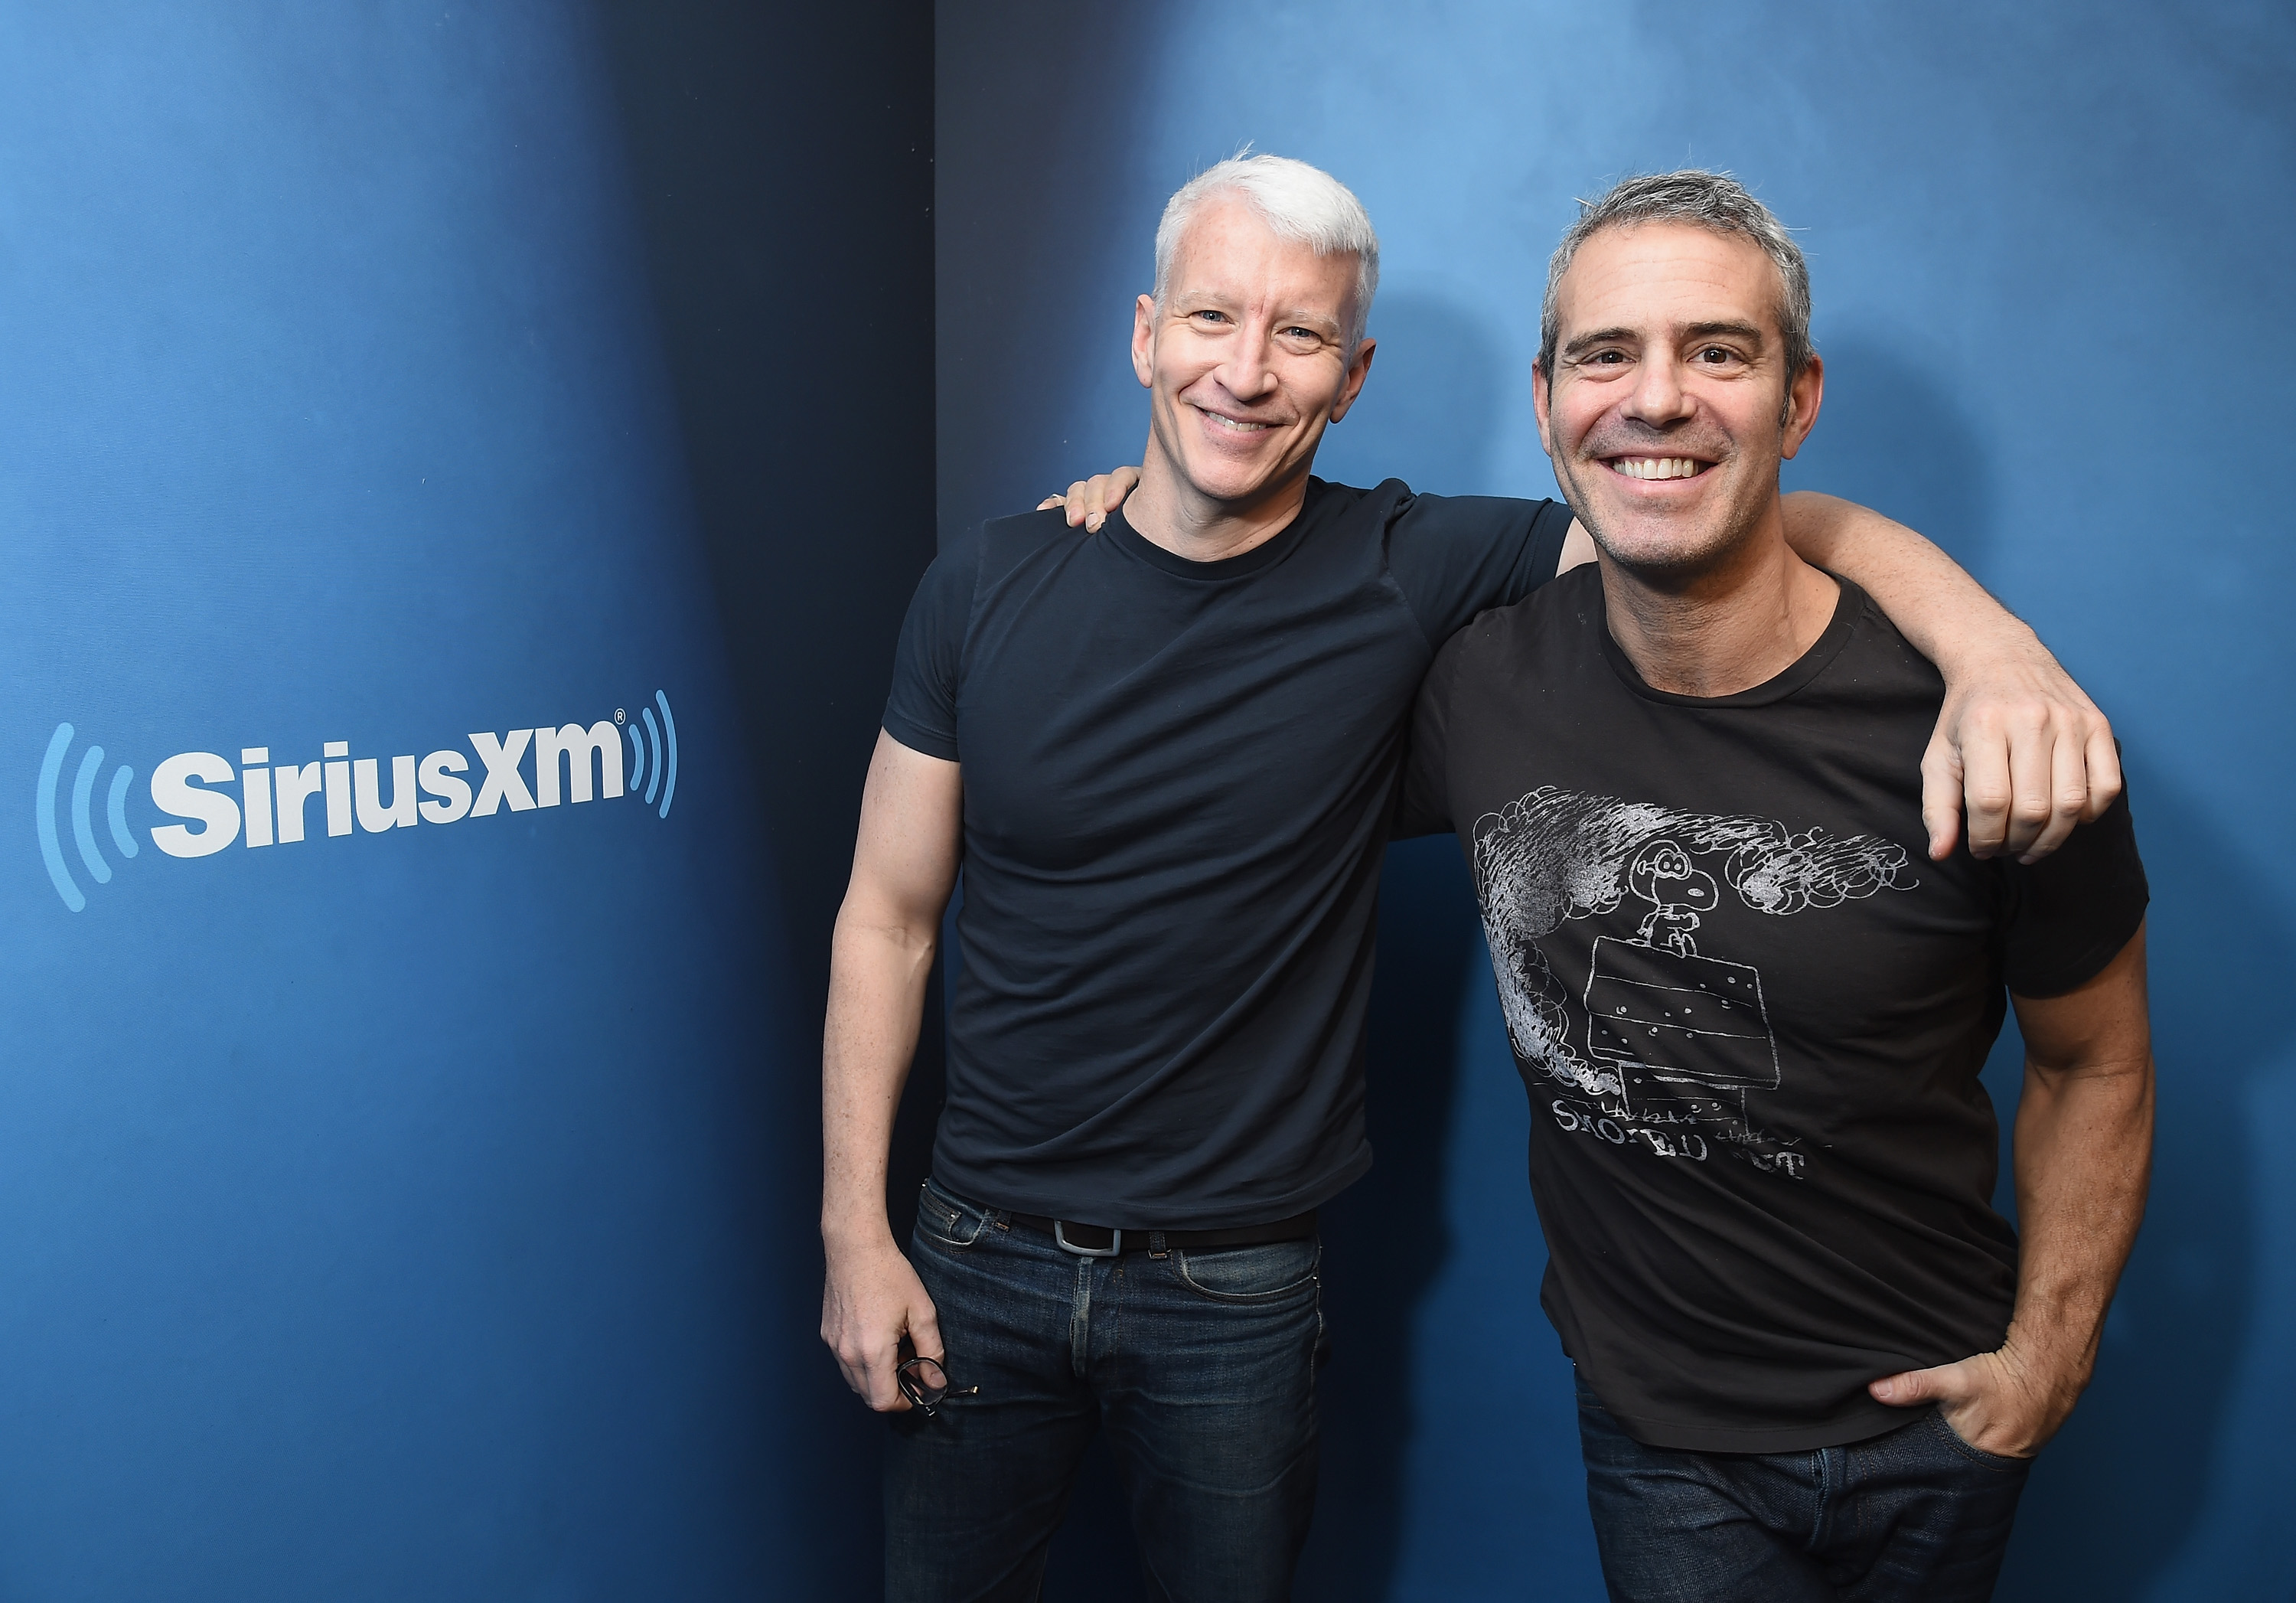 TV journalist Anderson Cooper and host Andy Cohen pose next to a SiriusXM sign.